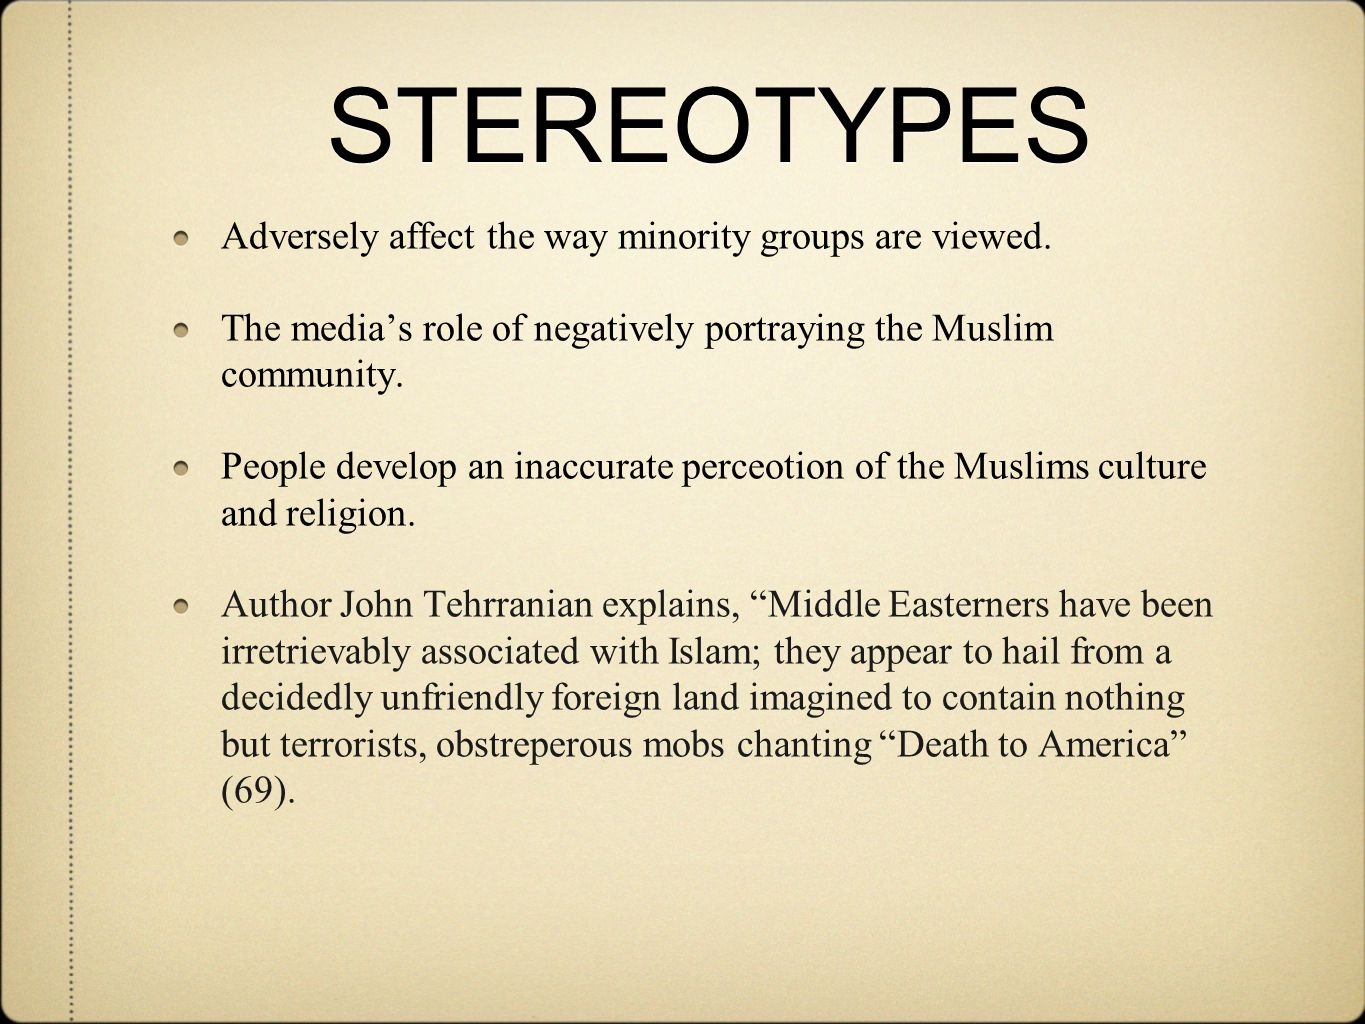 STEREOTYPES Adversely affect the way minority groups are viewed.